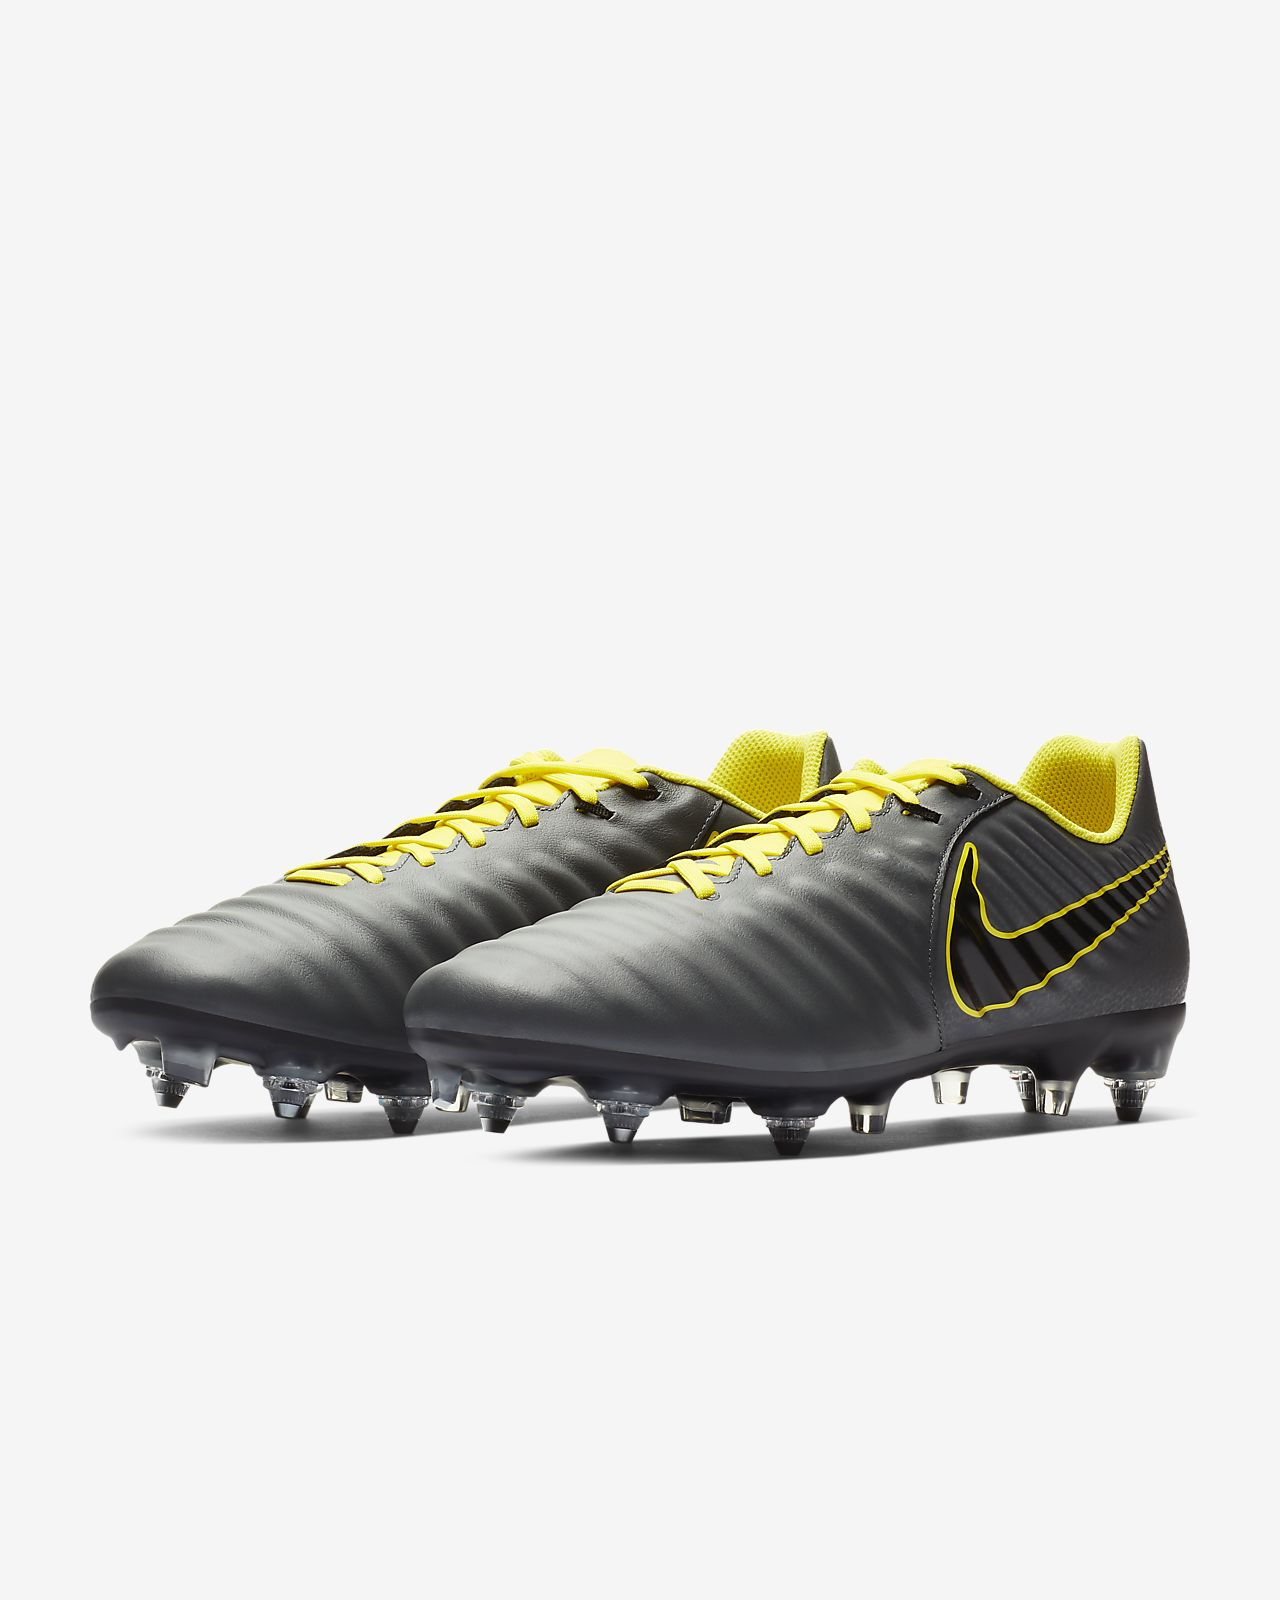 41ad648e9 Soft-Ground Pro Football Boot. Nike Legend 7 Academy SG-Pro Anti-Clog  Traction